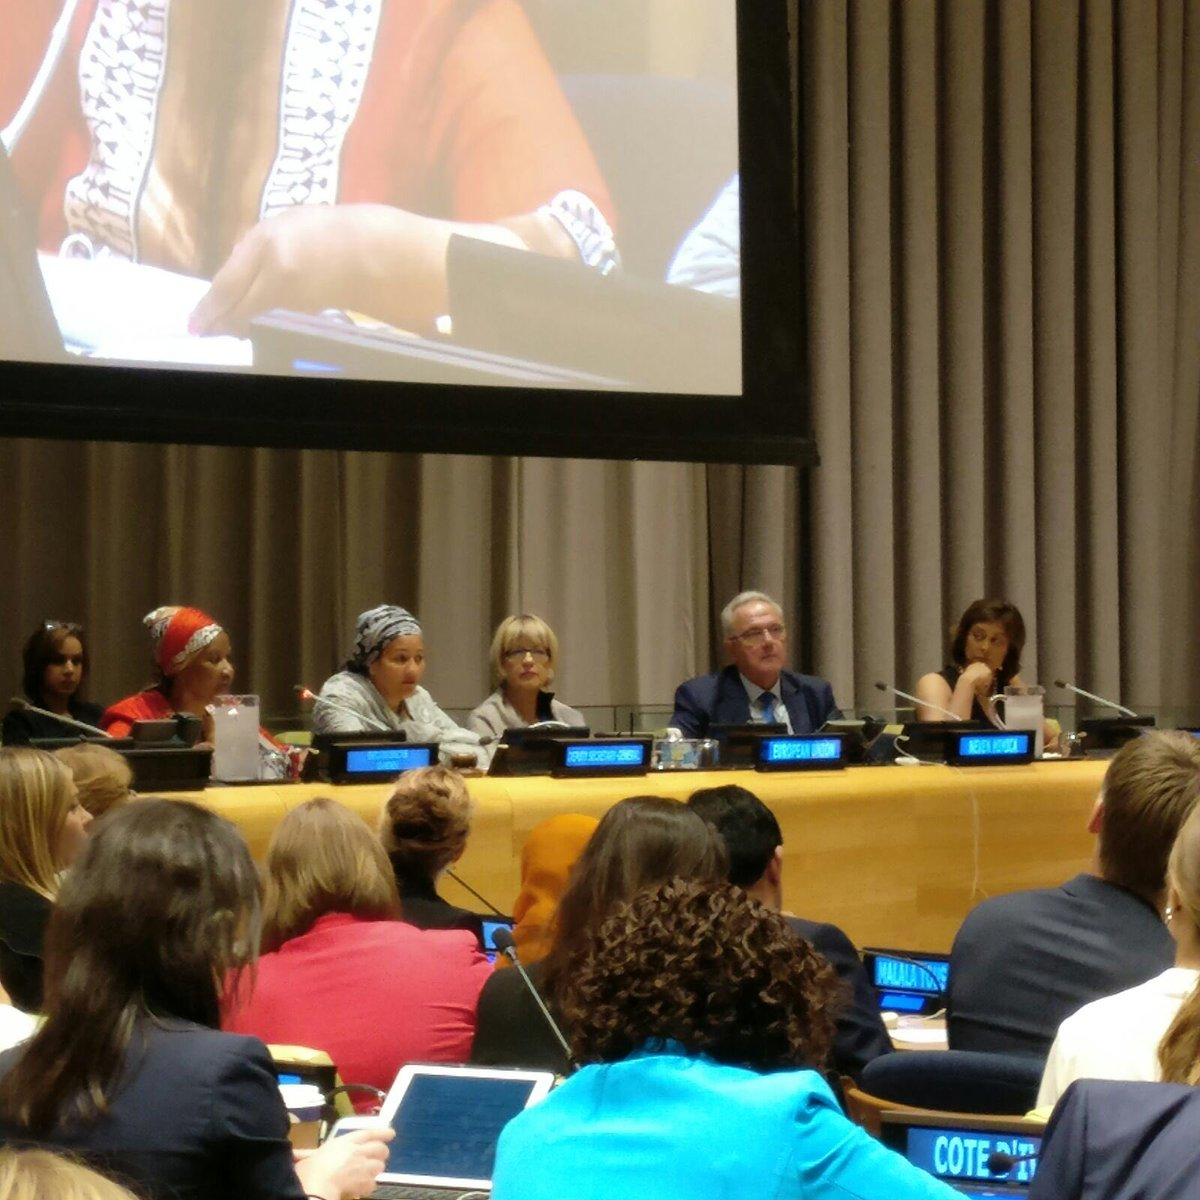 test Twitter Media - A Highlight of my #UNGA week: official launch of #SpotlightEndViolence. Timely #EU-#UN partnership to end violence against women&girls. https://t.co/FamwAtD2Mj